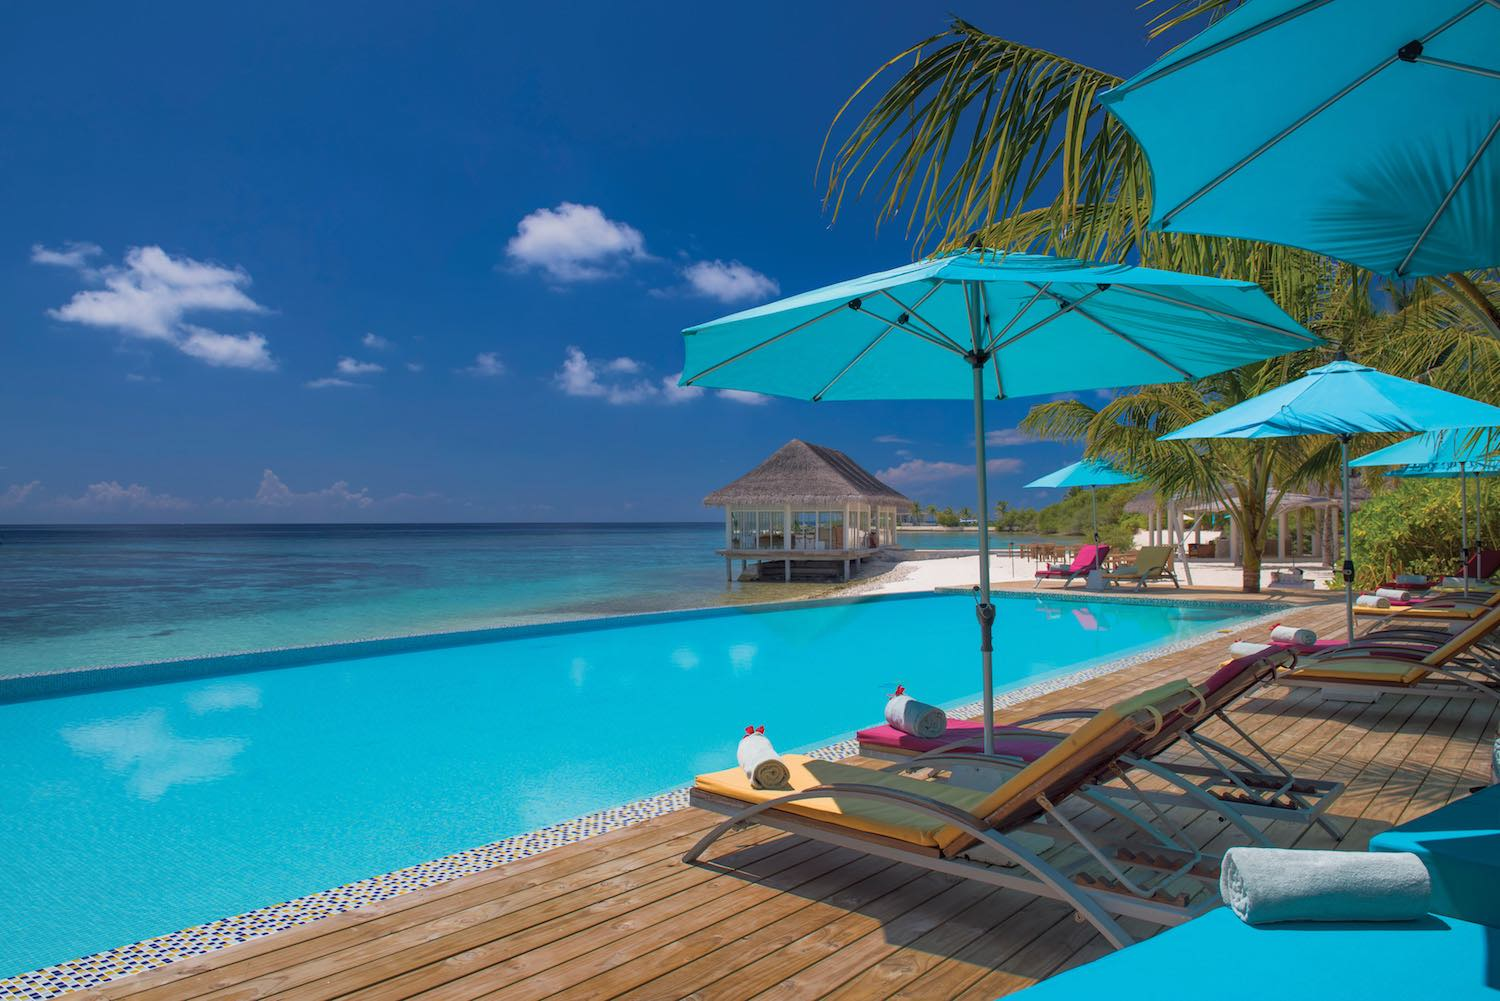 maldives-oblu-by-atmosphere-at-helengeli-adult-only-pool-5-holiday-honeymoon-vacation-invite-to-paradise.jpg